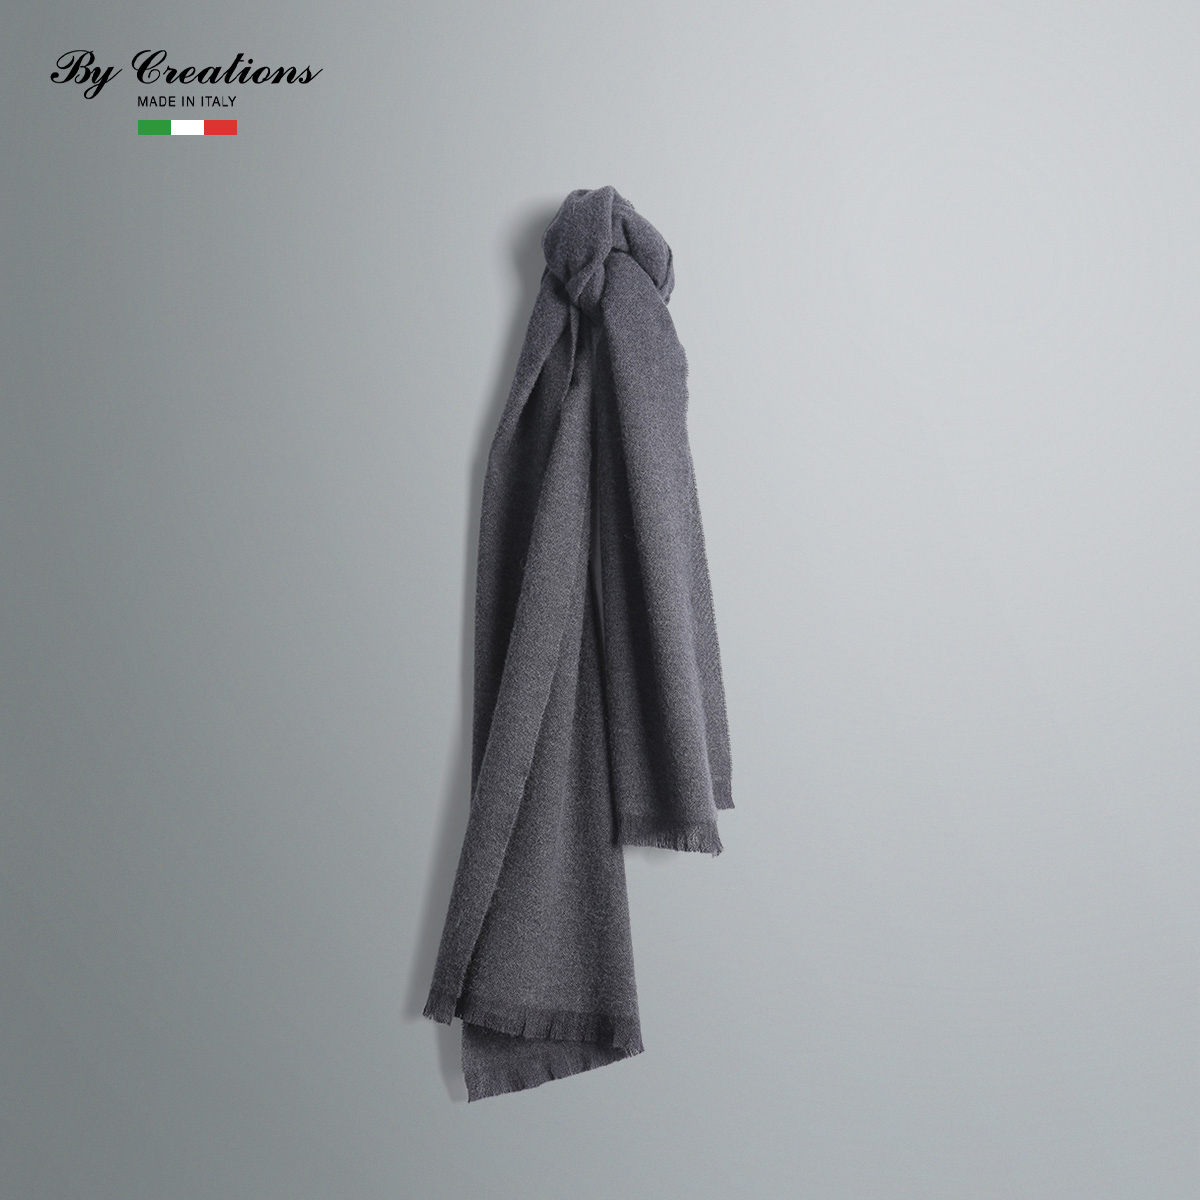 By creations imported italian cypress product wool scarf winter new men's light luxury